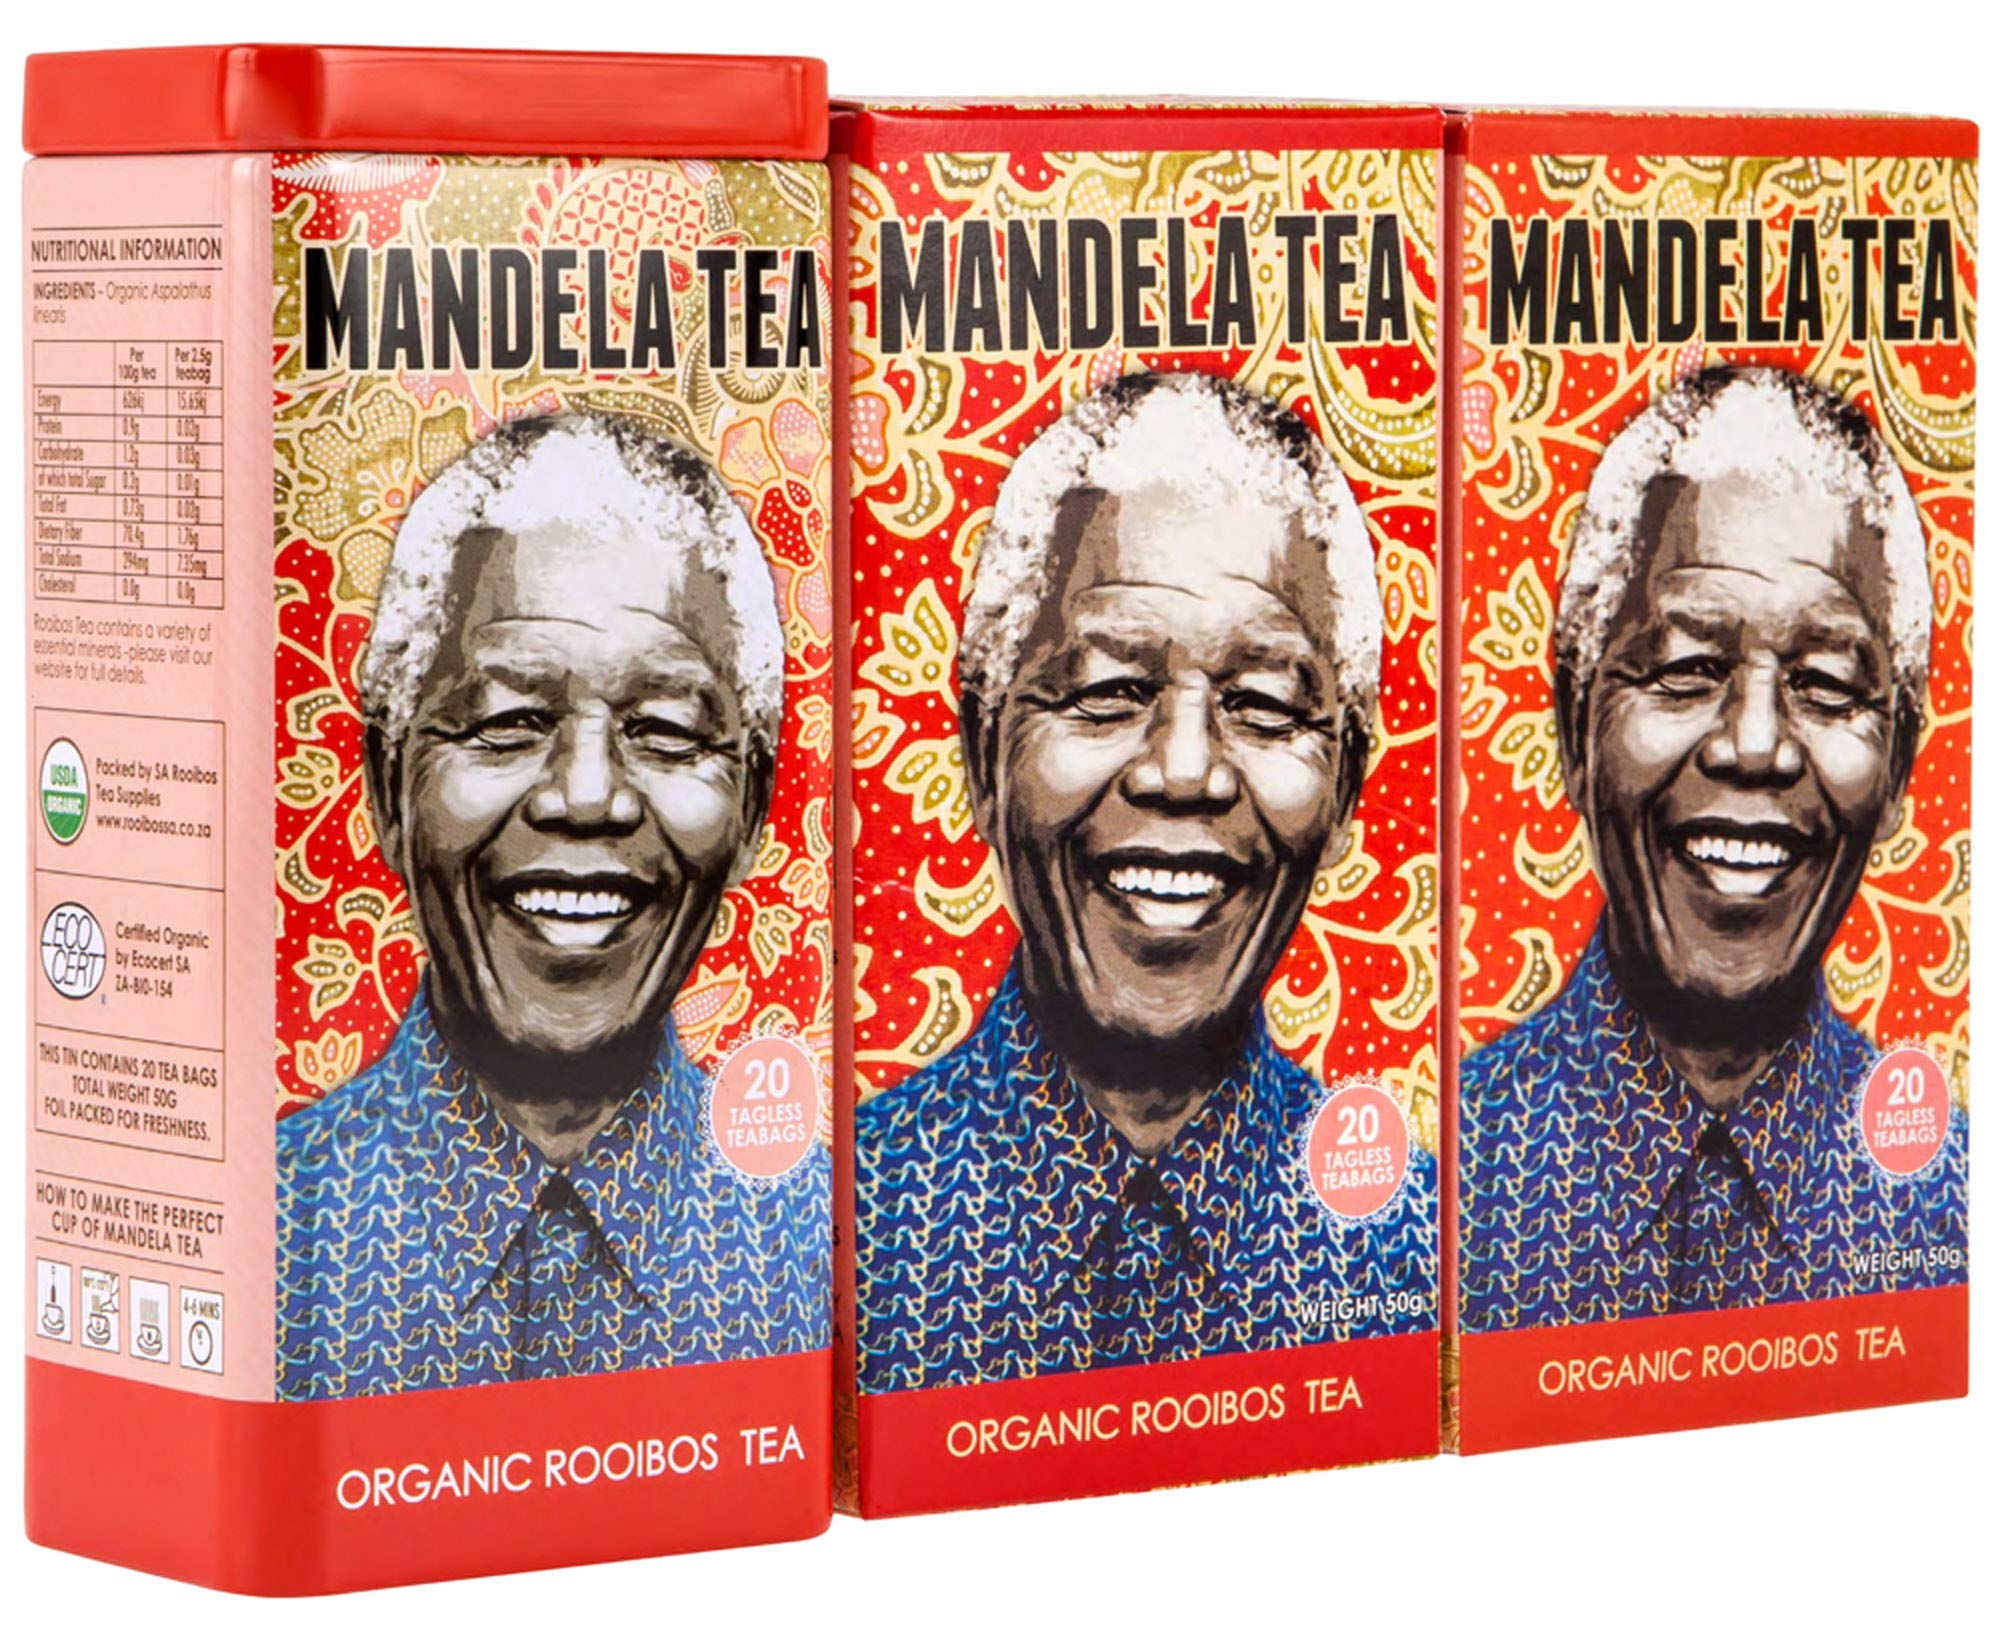 Mandela Tea - Organic Rooibos Tea (60 Tea Bags) | Delicious Organic Red Herbal Tea from South Africa | Includes Stay Fresh Gift Tin | Zero Calorie or Caffeine | Antioxidant Rich All Natural Tea Leaves by Mandela Tea